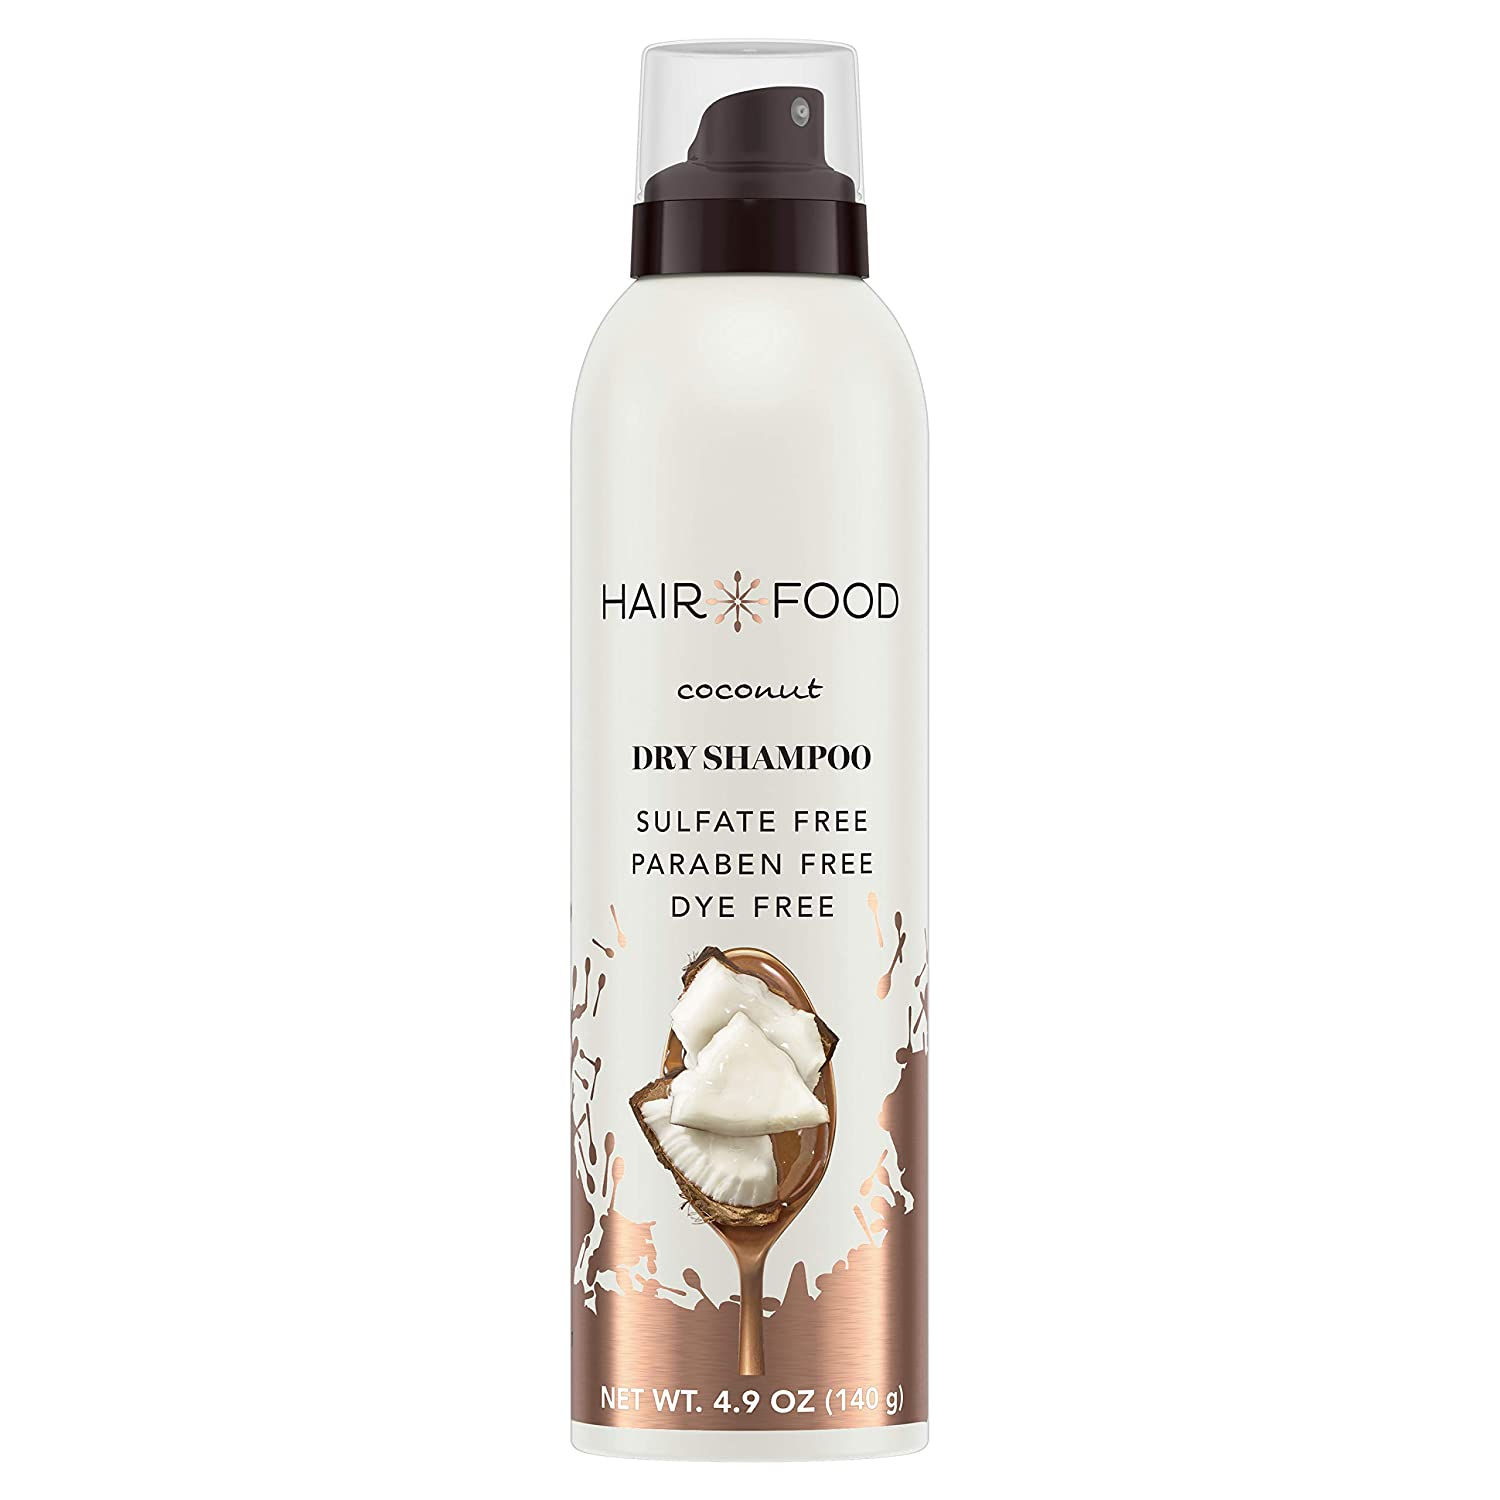 Hair Food Dry Shampoo For Women, Nourishing Coconut, Sulfate and Paraben Free, Dye free, 4.9 Oz